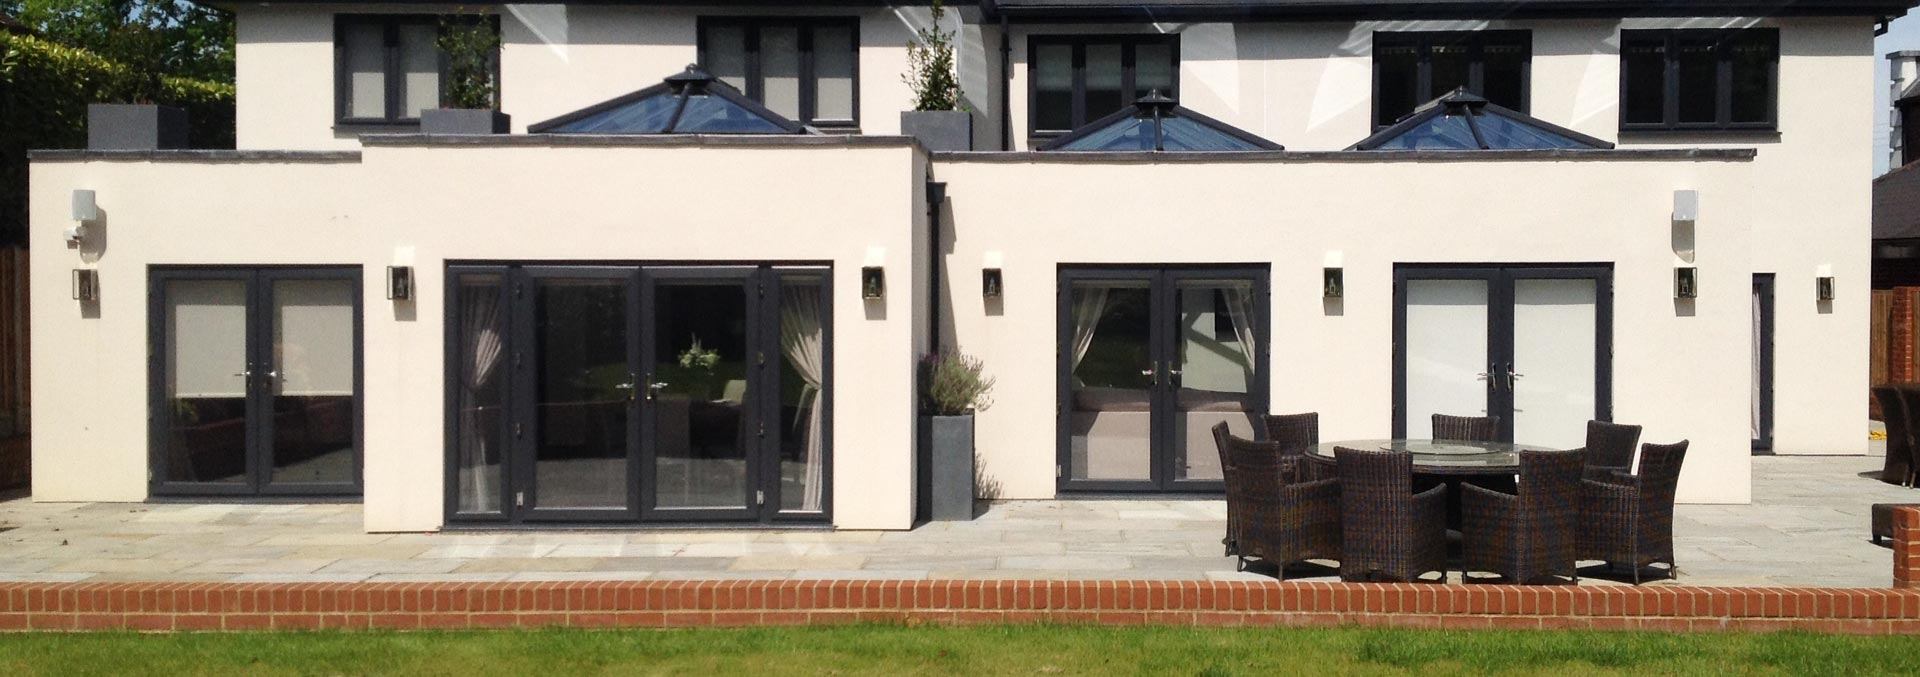 Black uPVC french doors and windows